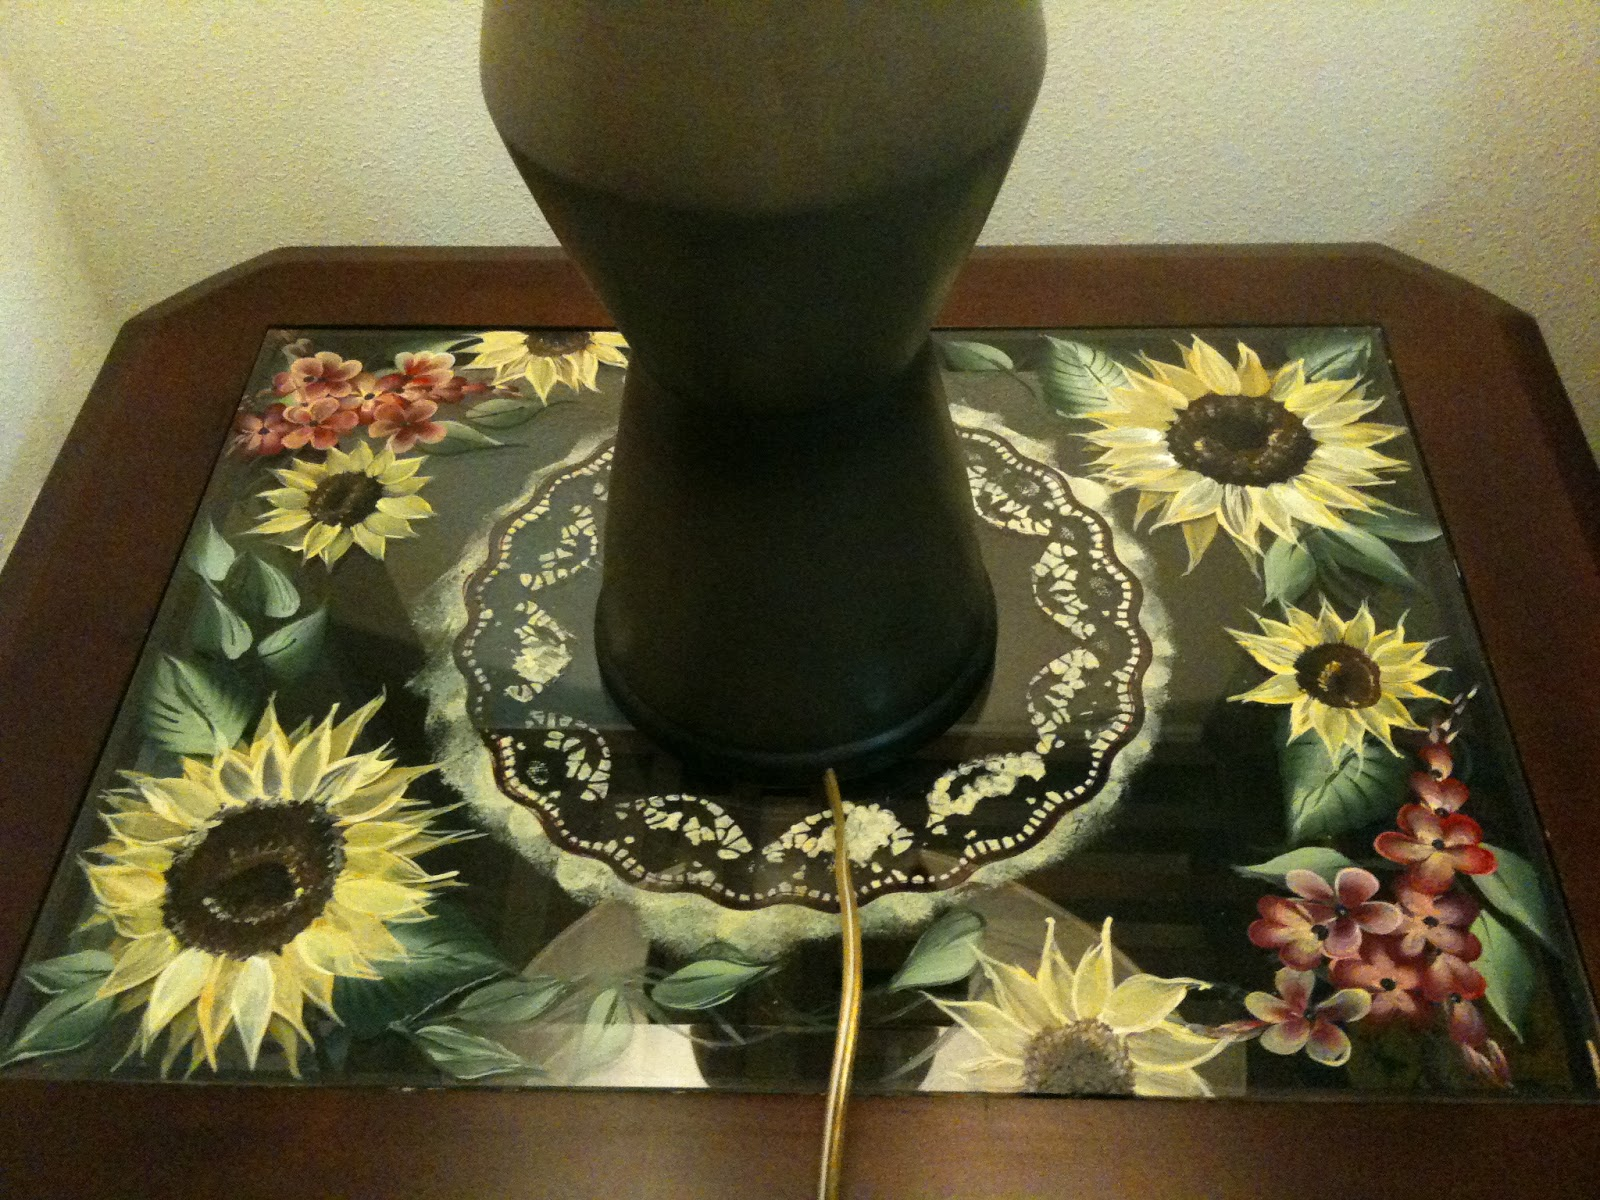 One Stroke Painting Sunflowers http://pracheeagrawal.blogspot.com/2011/06/hello-friends-after-this-busy-week.html